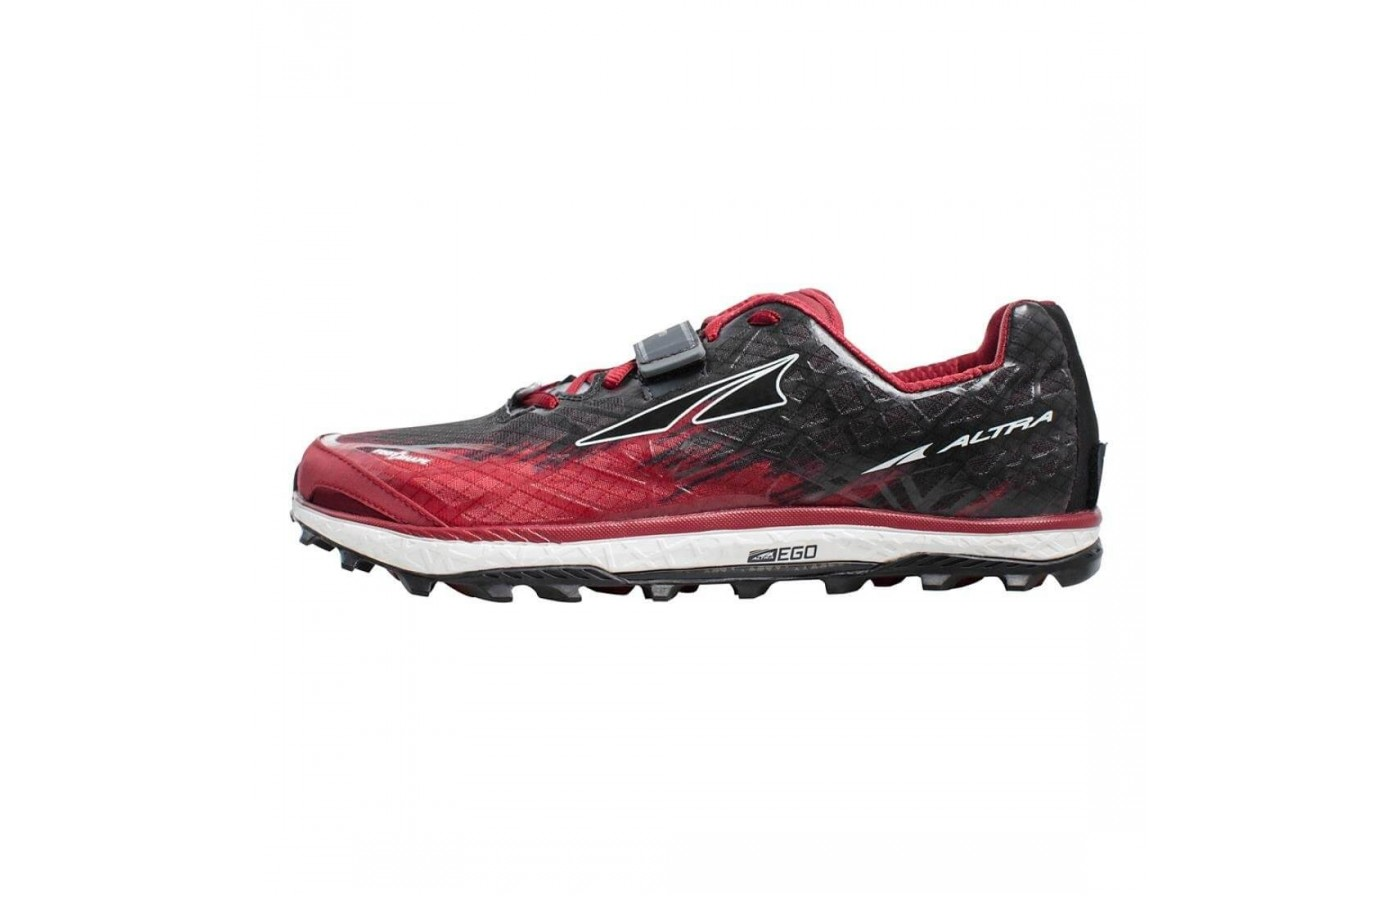 The Altra King Mt 1.5 has a ripstop nylon upper